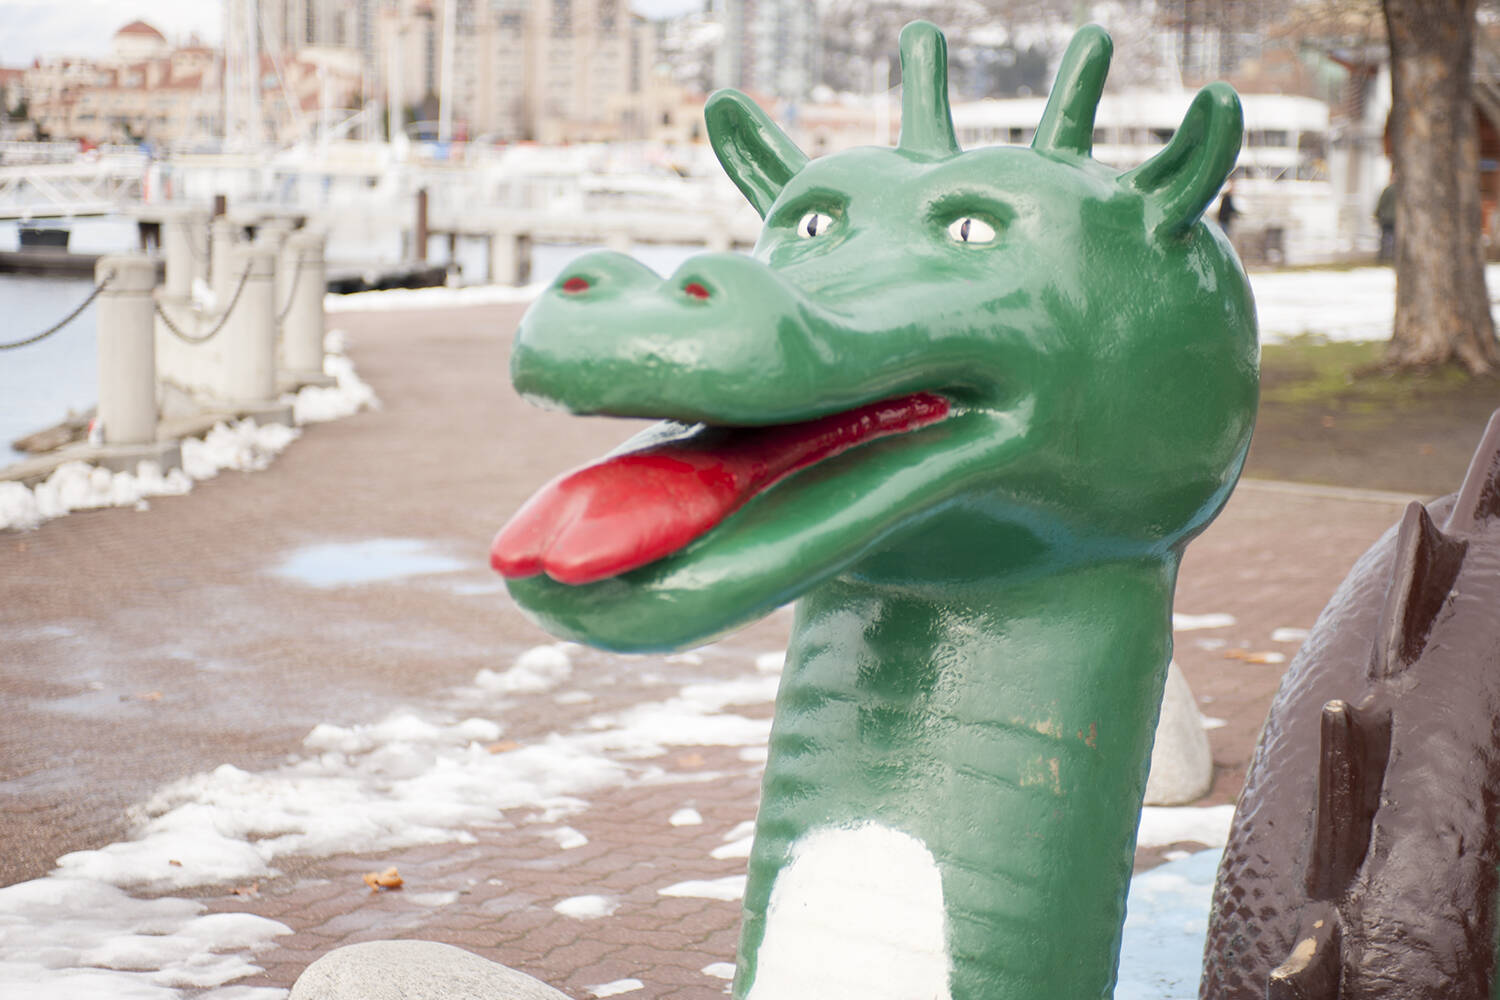 The legal rights to an elusive British Columbia lake creature known as Ogopogo have been transferred to an alliance of Indigenous nations who say the legendary figure has always been part of their centuries-old spiritual teachings. (Michael Rodriguez - Capital News)